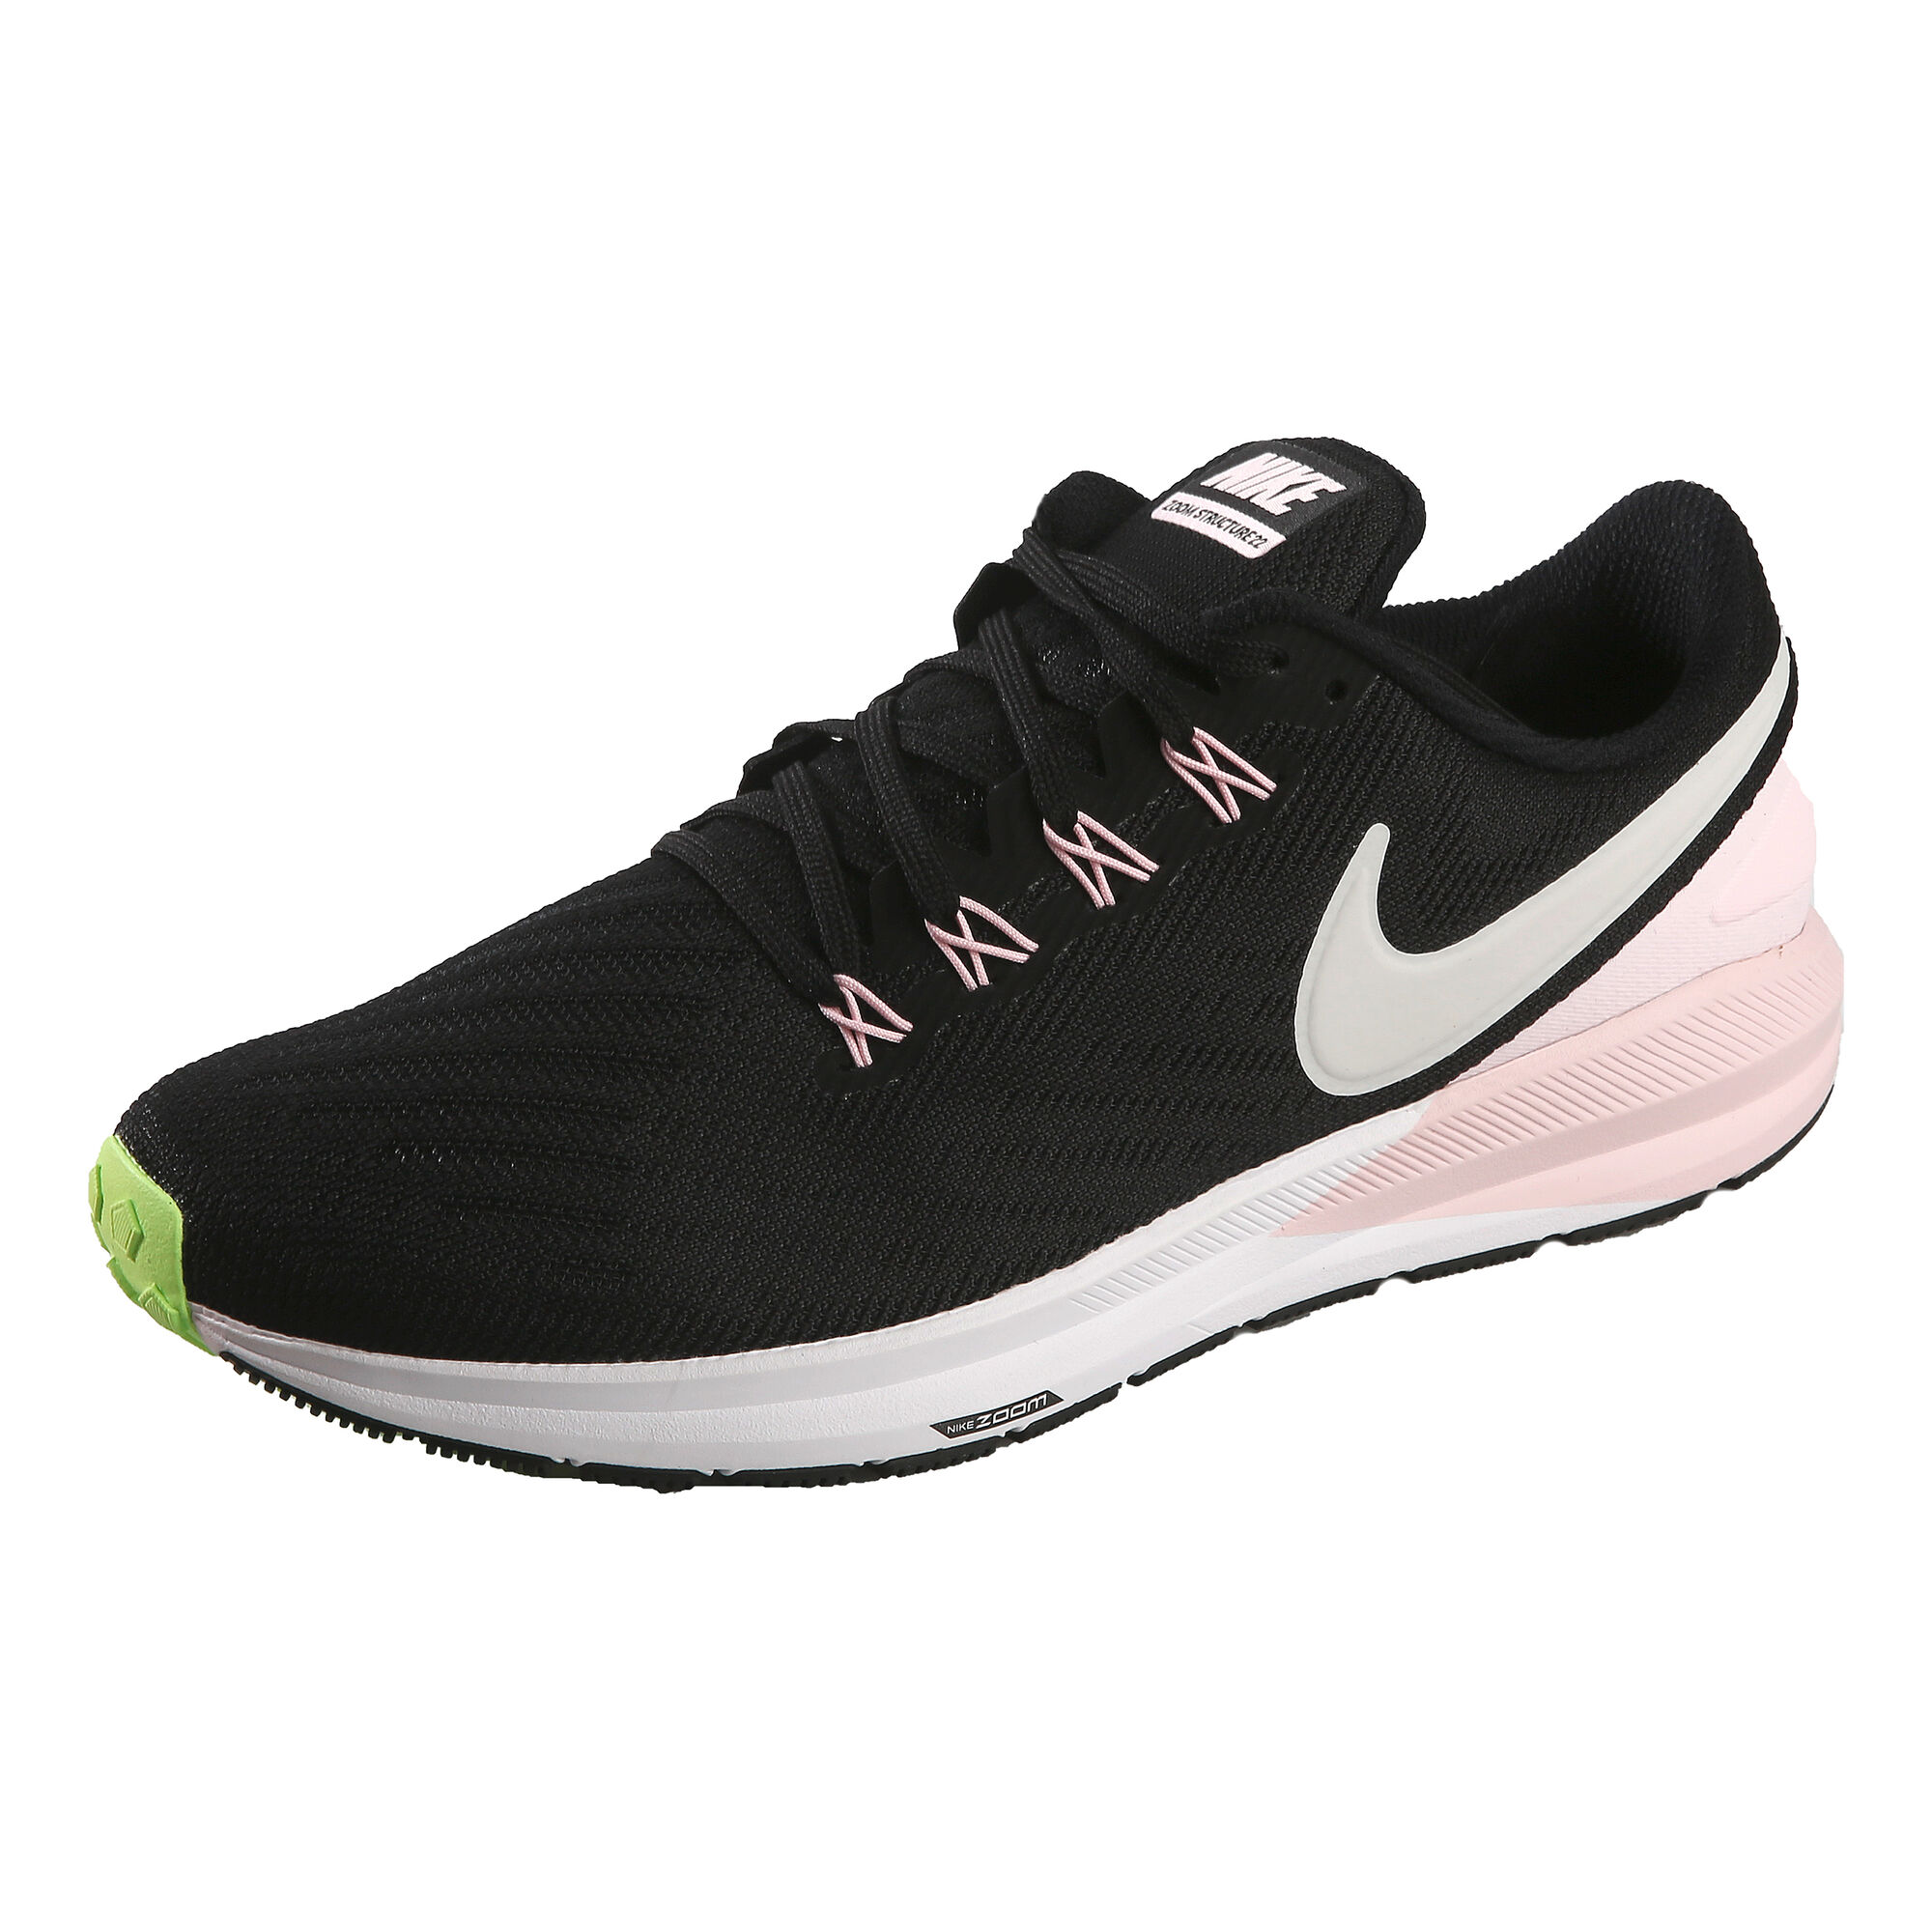 huge selection of 8f3c2 46595 buy Nike Air Zoom Structure 22 Stability Running Shoe Women ...